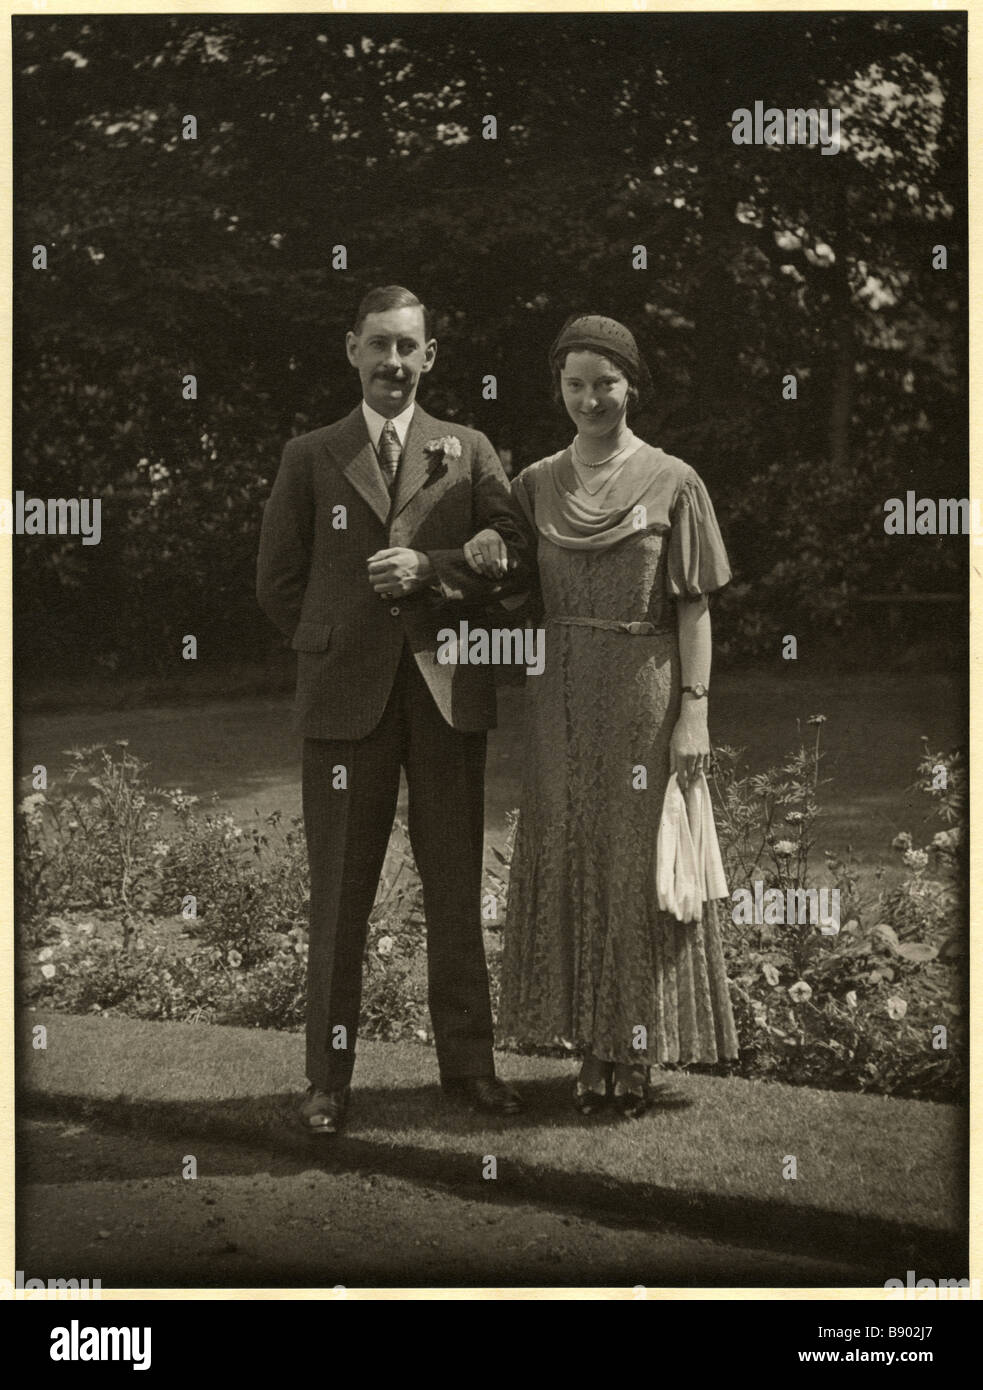 Edward Chambré Hardman and Margaret Mills on their wedding day in August 1932 - Stock Image